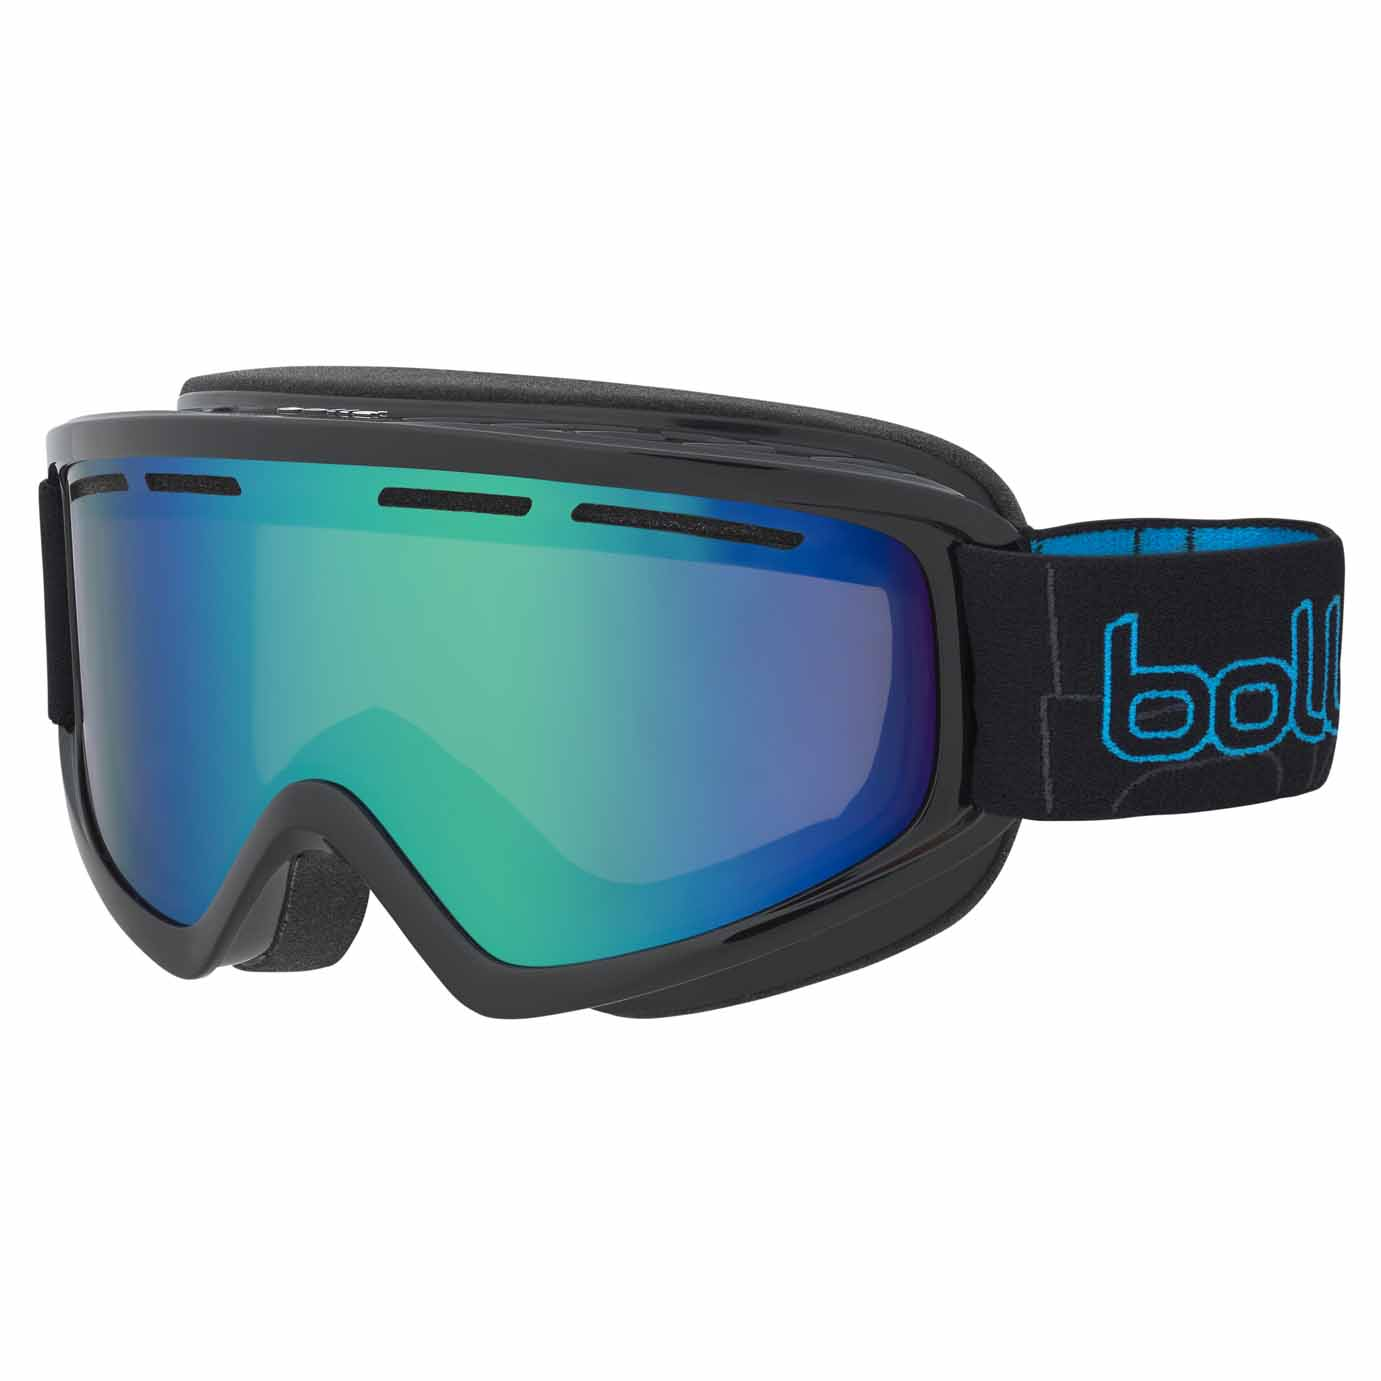 2017-18 Bolle Schuss Ski And Snowboard Goggle green